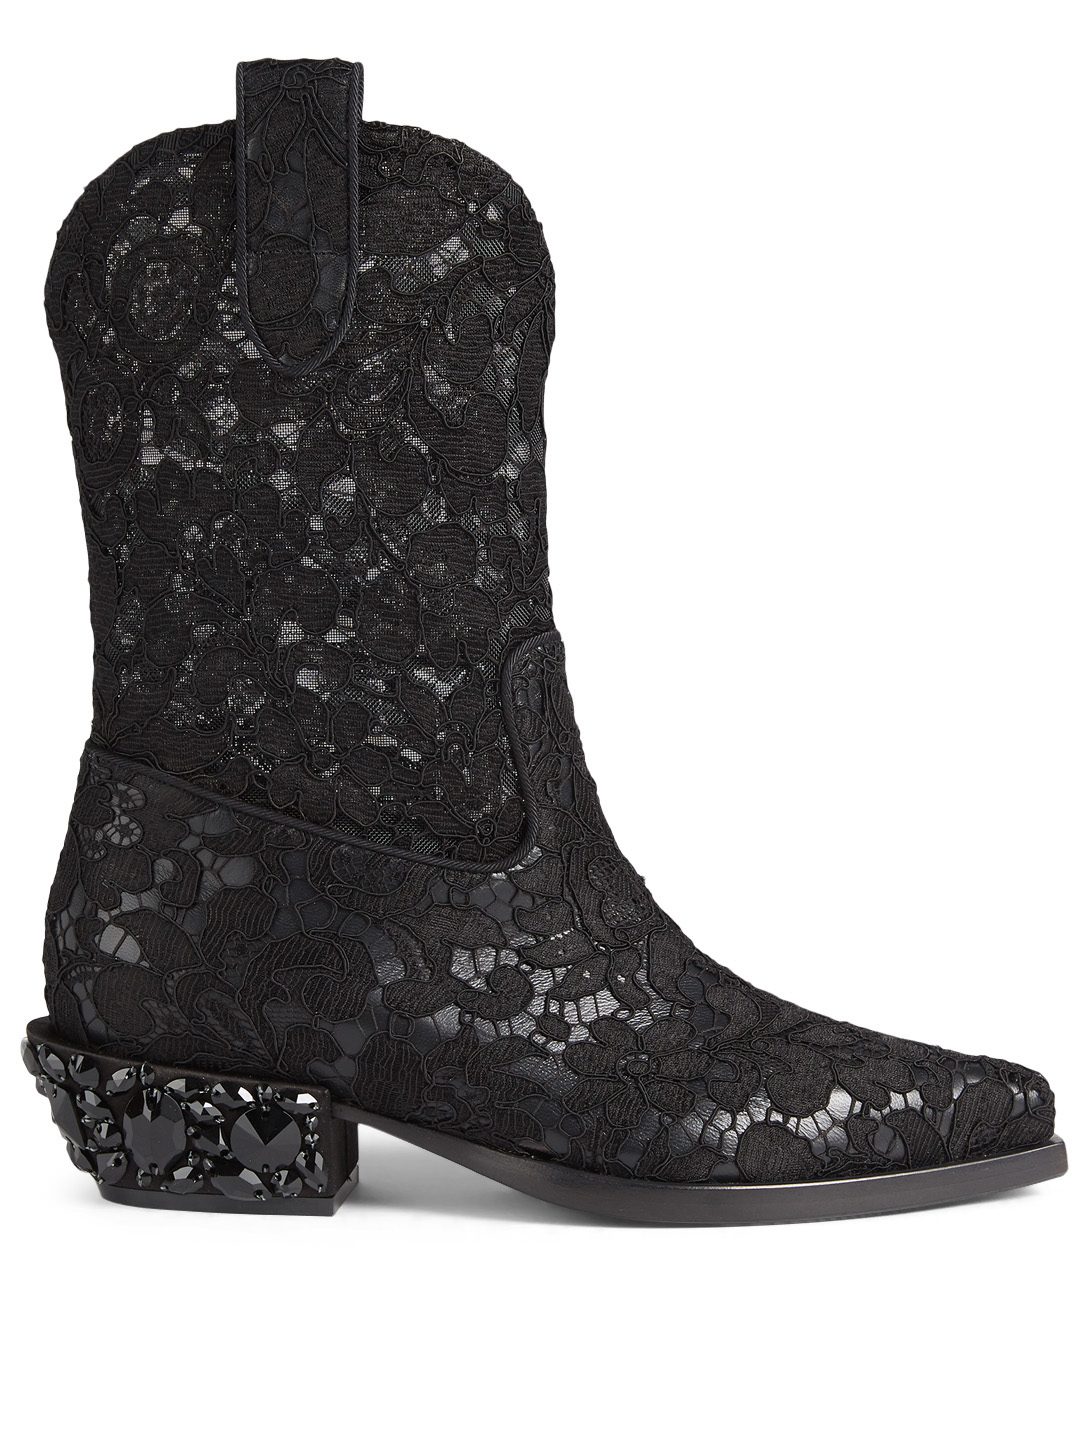 DOLCE & GABBANA Lace Cowboy Boots Womens Black